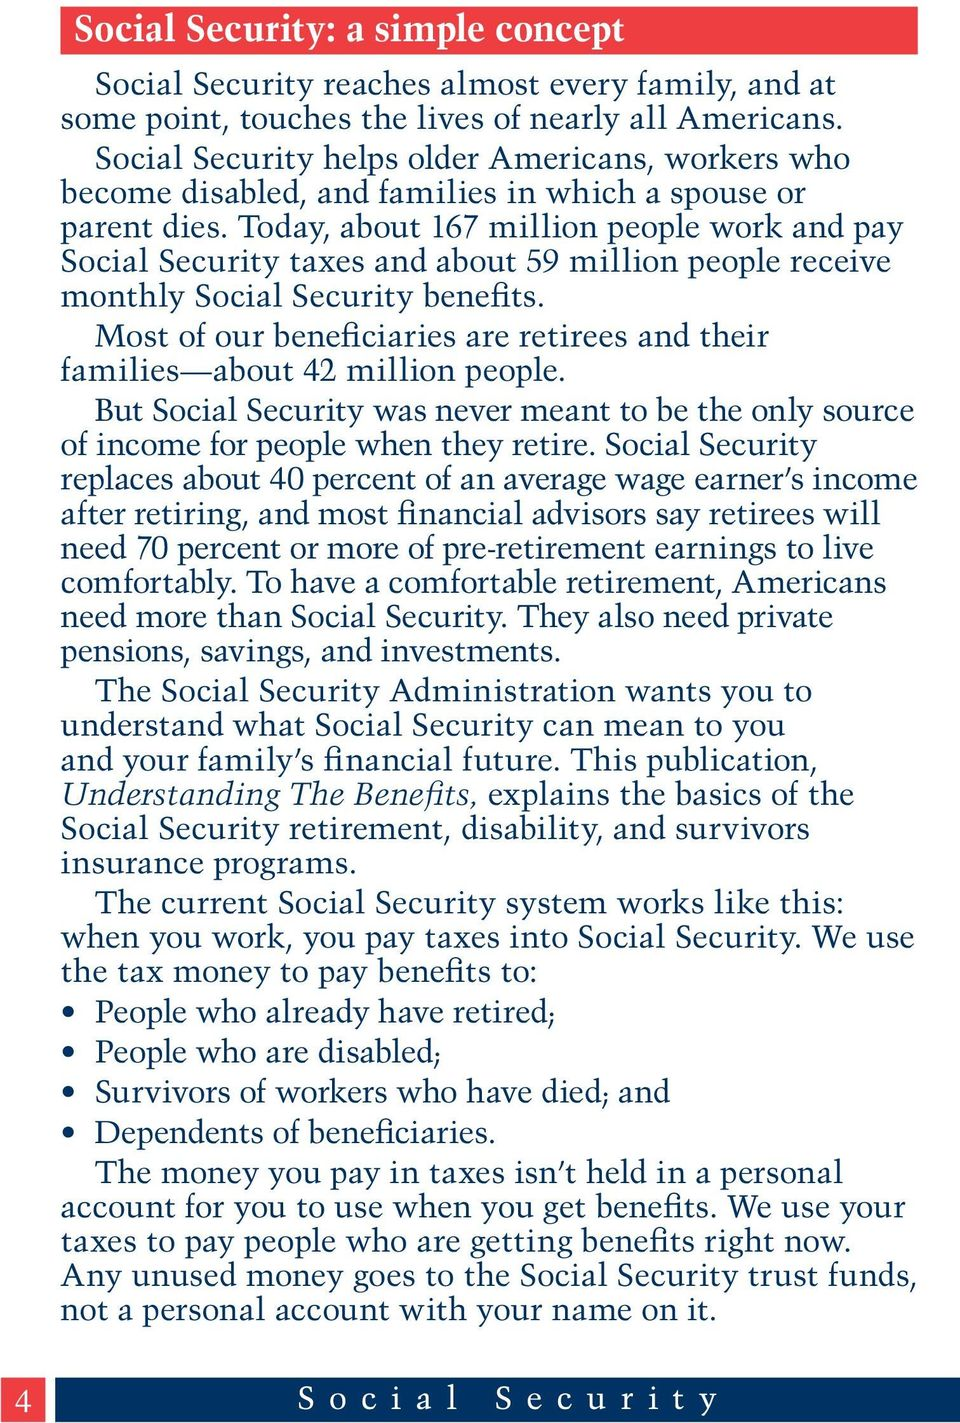 Today, about 167 million people work and pay Social Security taxes and about 59 million people receive monthly Social Security benefits.